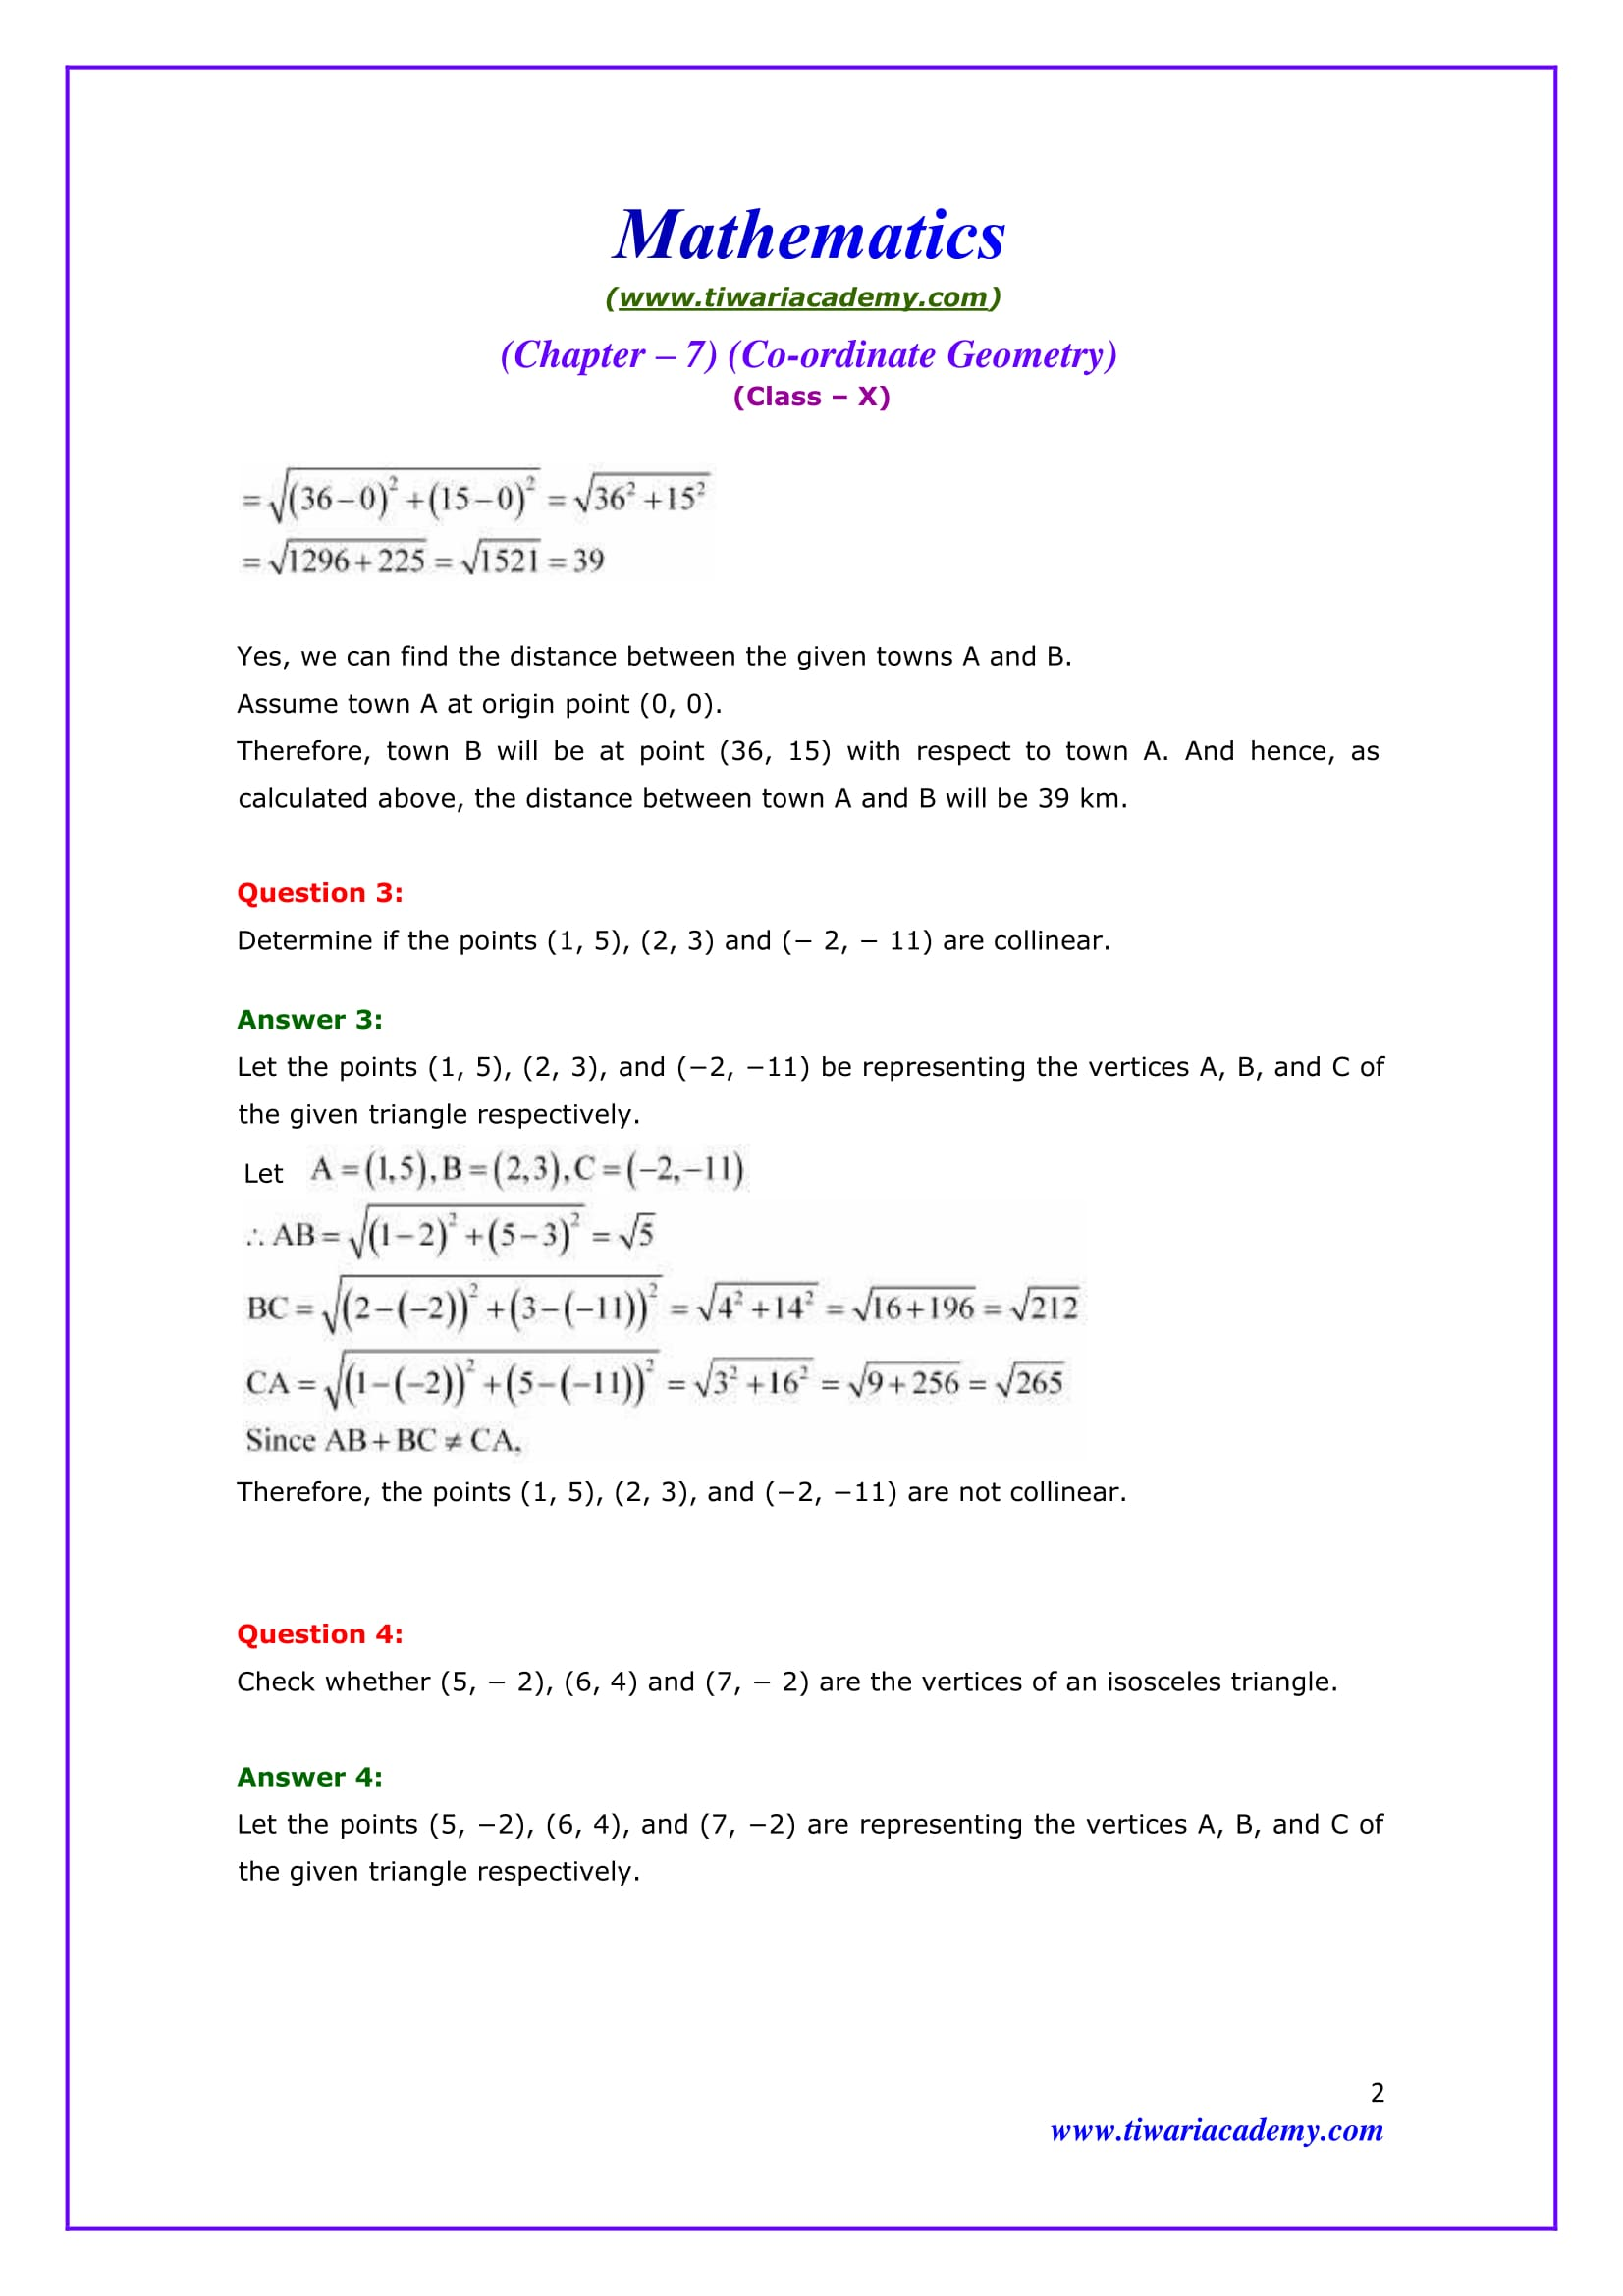 NCERT Solutions for Class 10 Maths Chapter 7 Exercise 7.1 Question 3 & 4